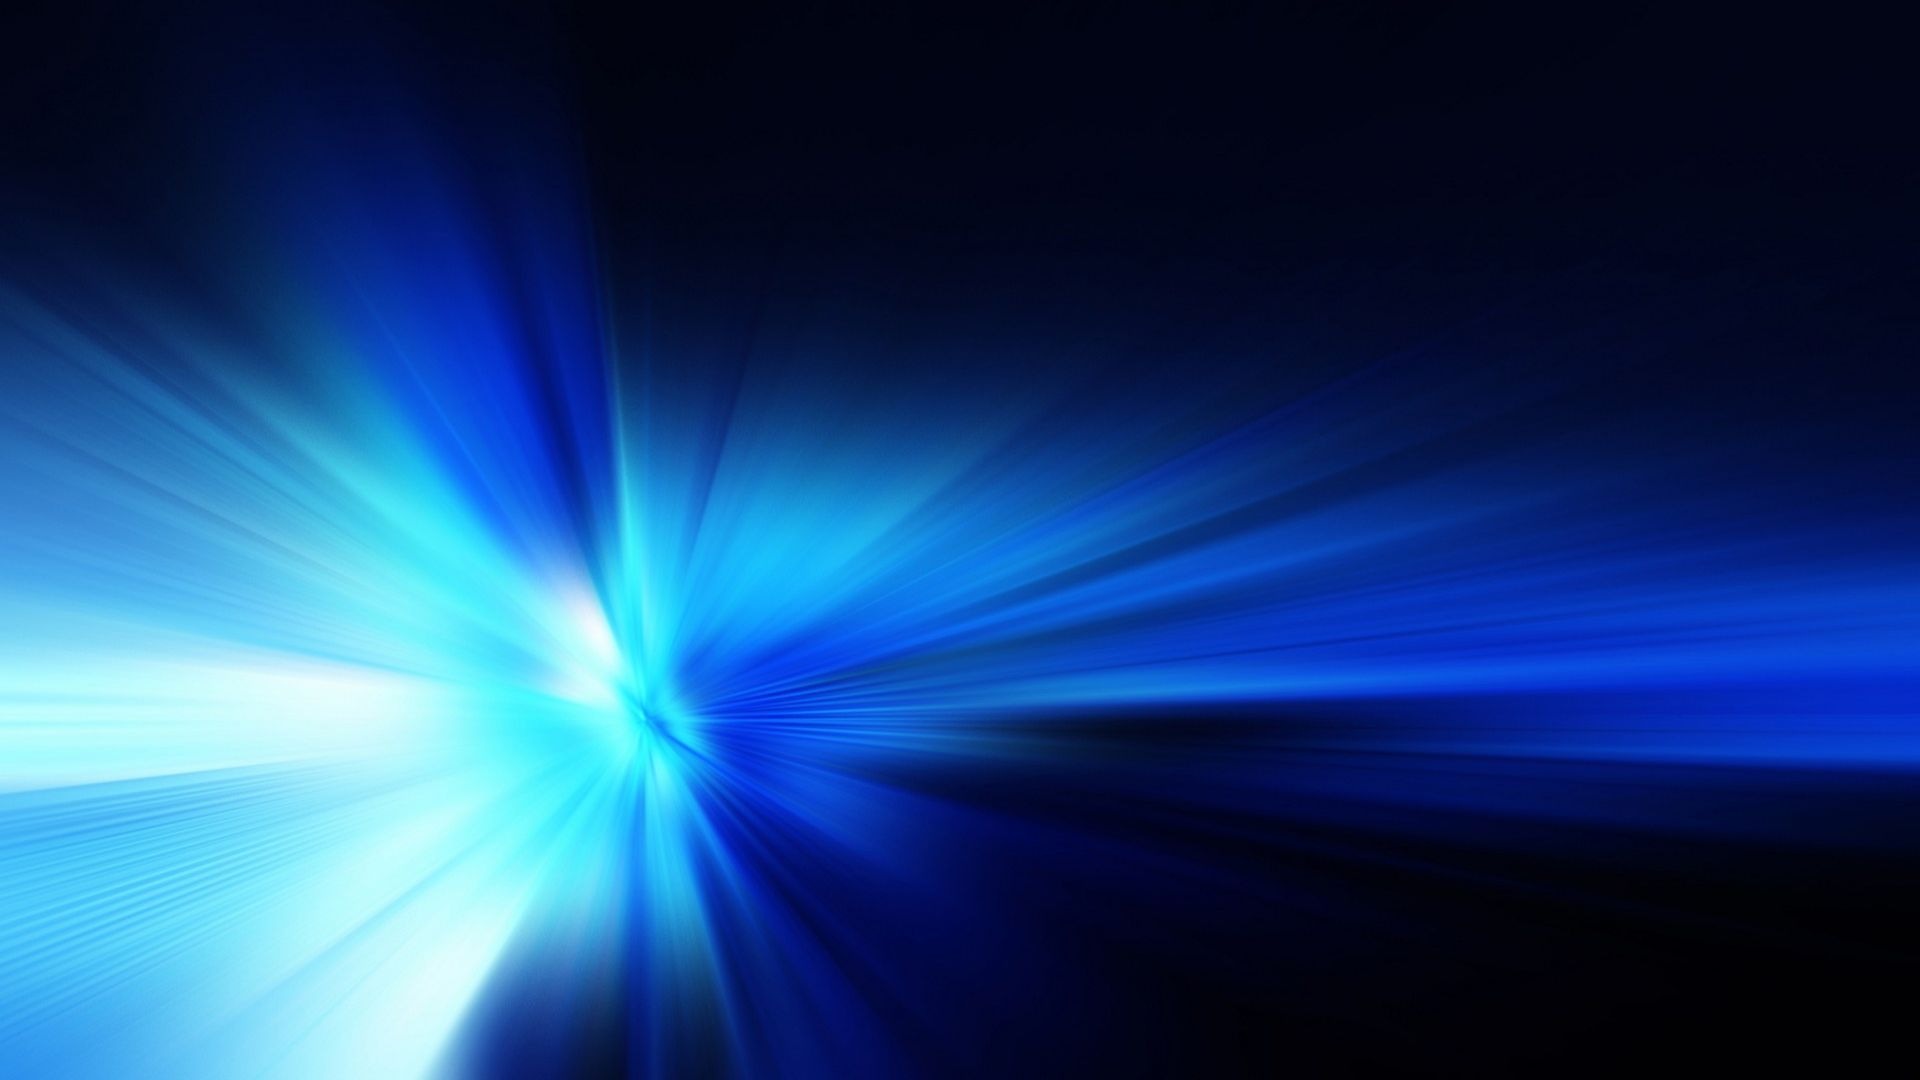 Abstract wallpapers blue #6